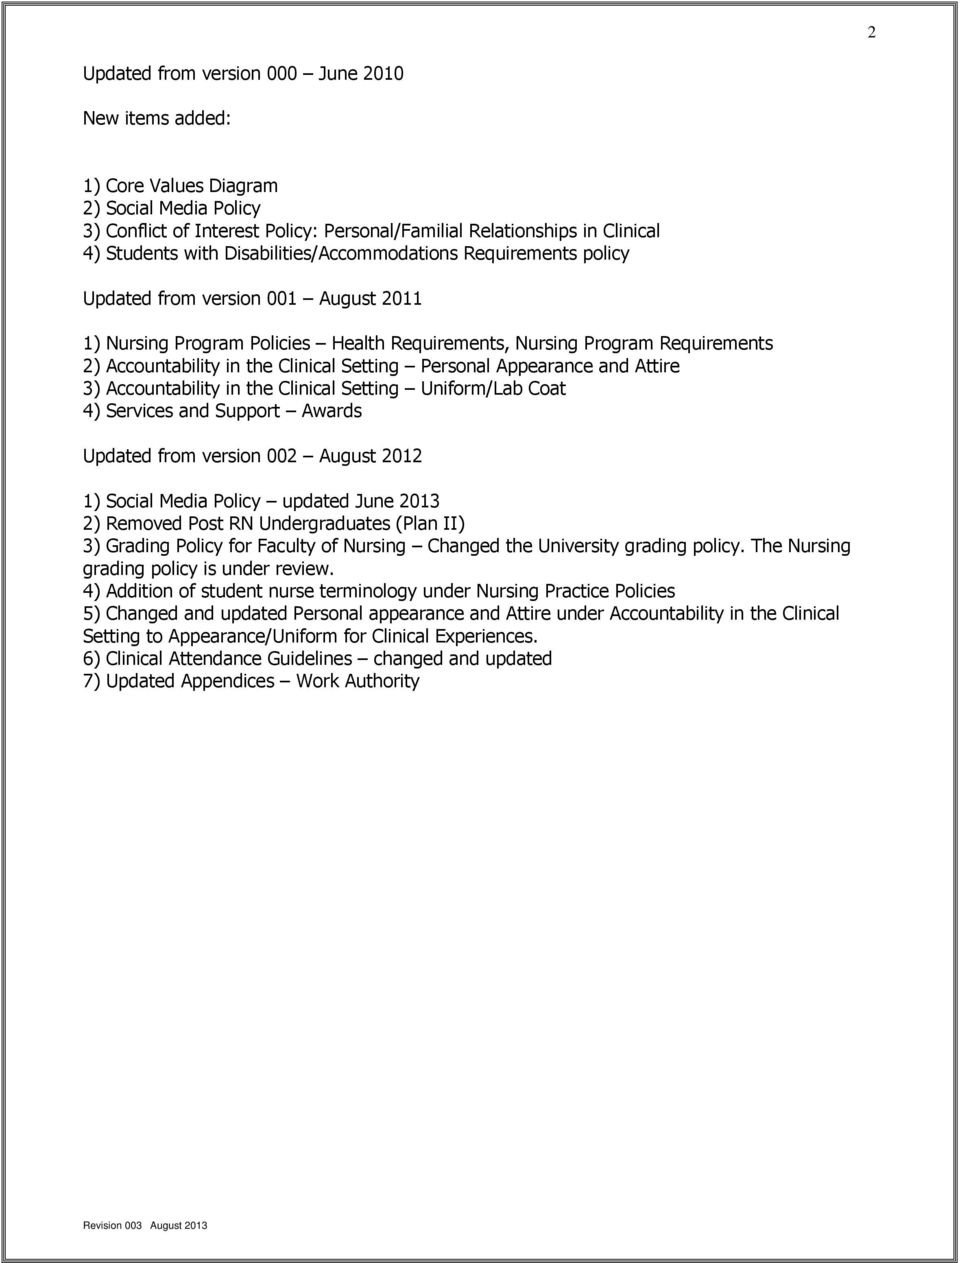 Setting Personal Appearance and Attire 3) Accountability in the Clinical Setting Uniform/Lab Coat 4) Services and Support Awards Updated from version 002 August 2012 1) Social Media Policy updated